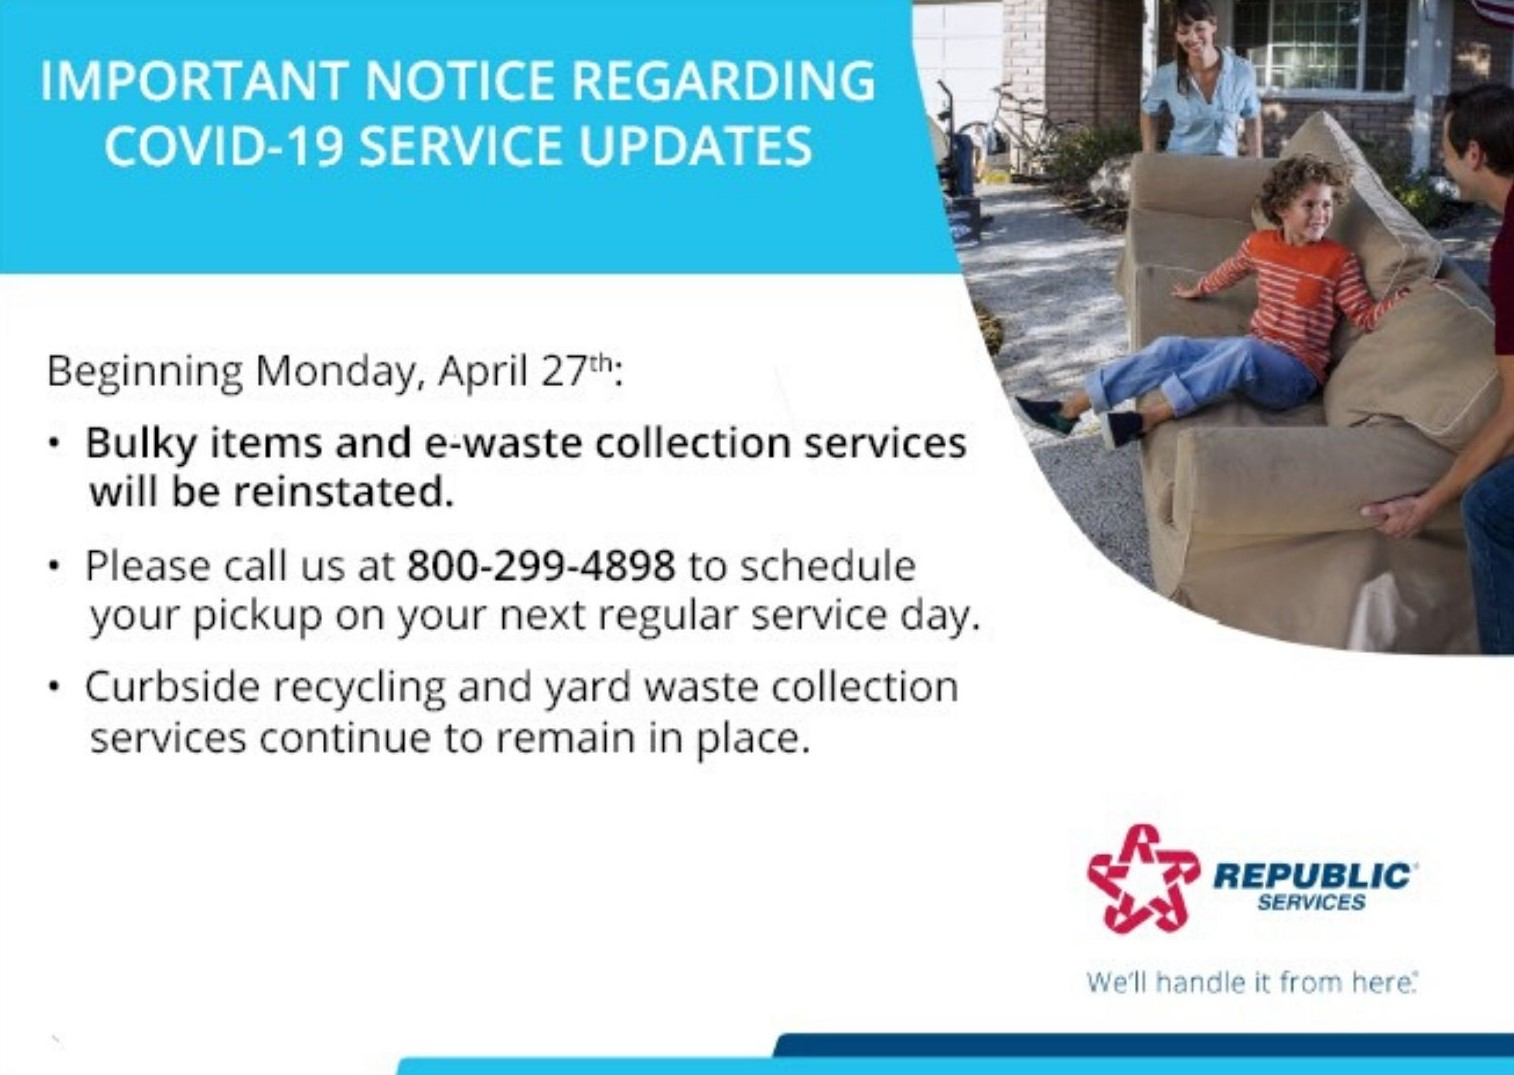 Update Reinstatement of Bulky Item and E-waste Pick-up Services